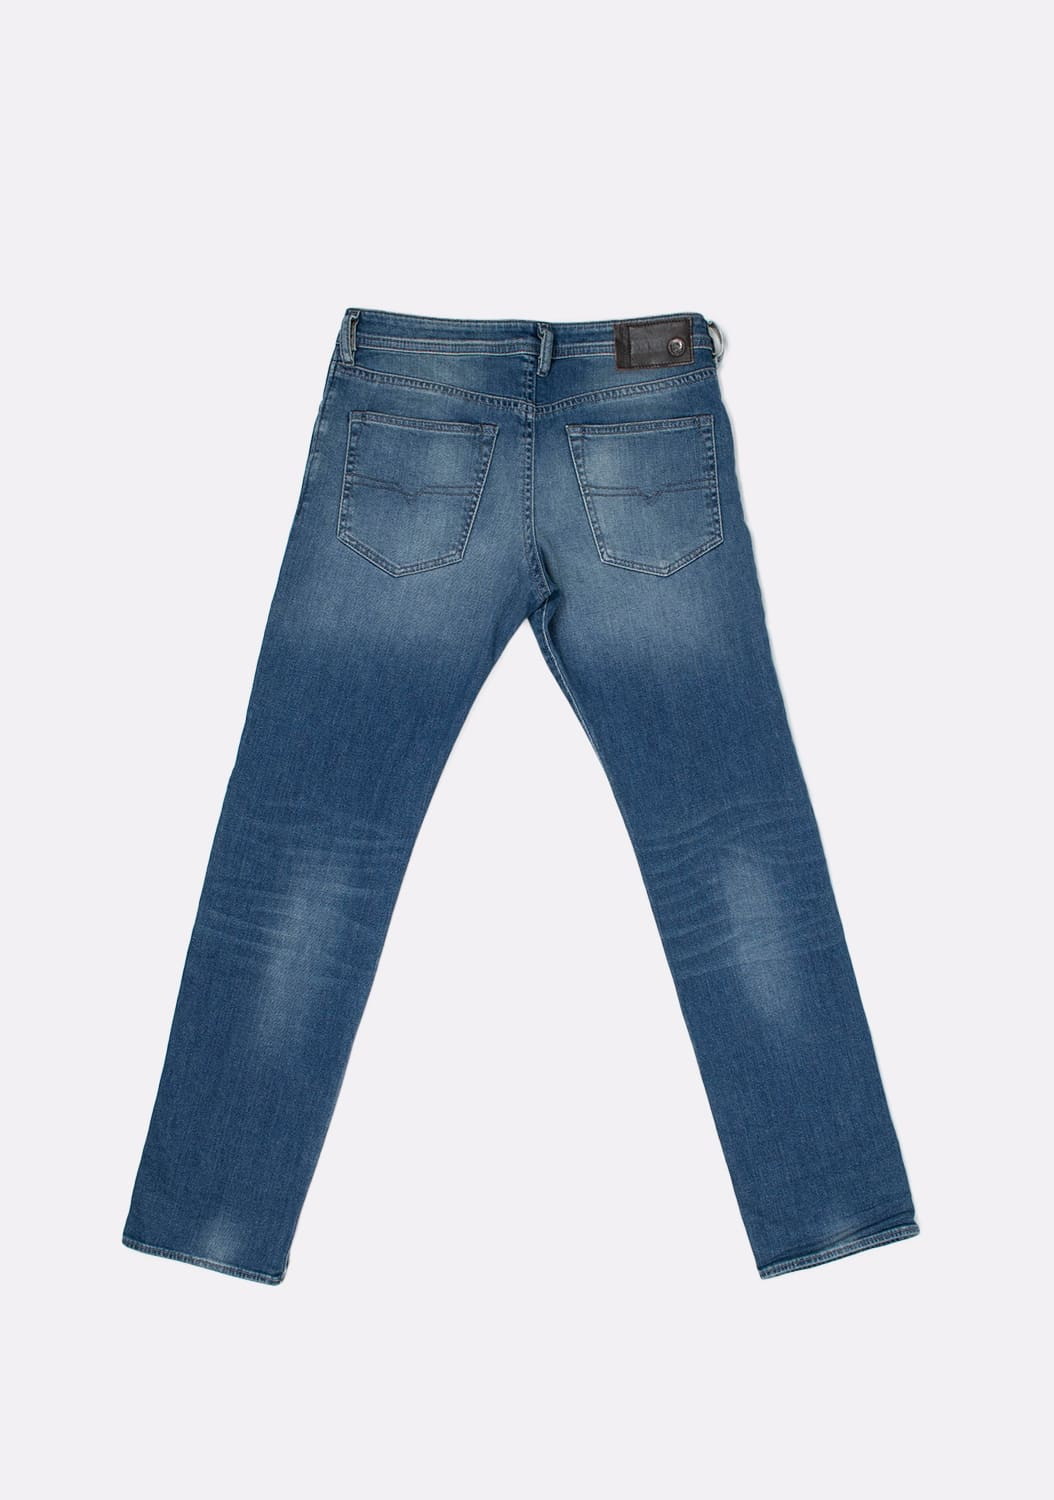 Diesel-Buster-Regular-Slim-Tappered-0669C-Stretch-30-32-melyni-urocklt (5)